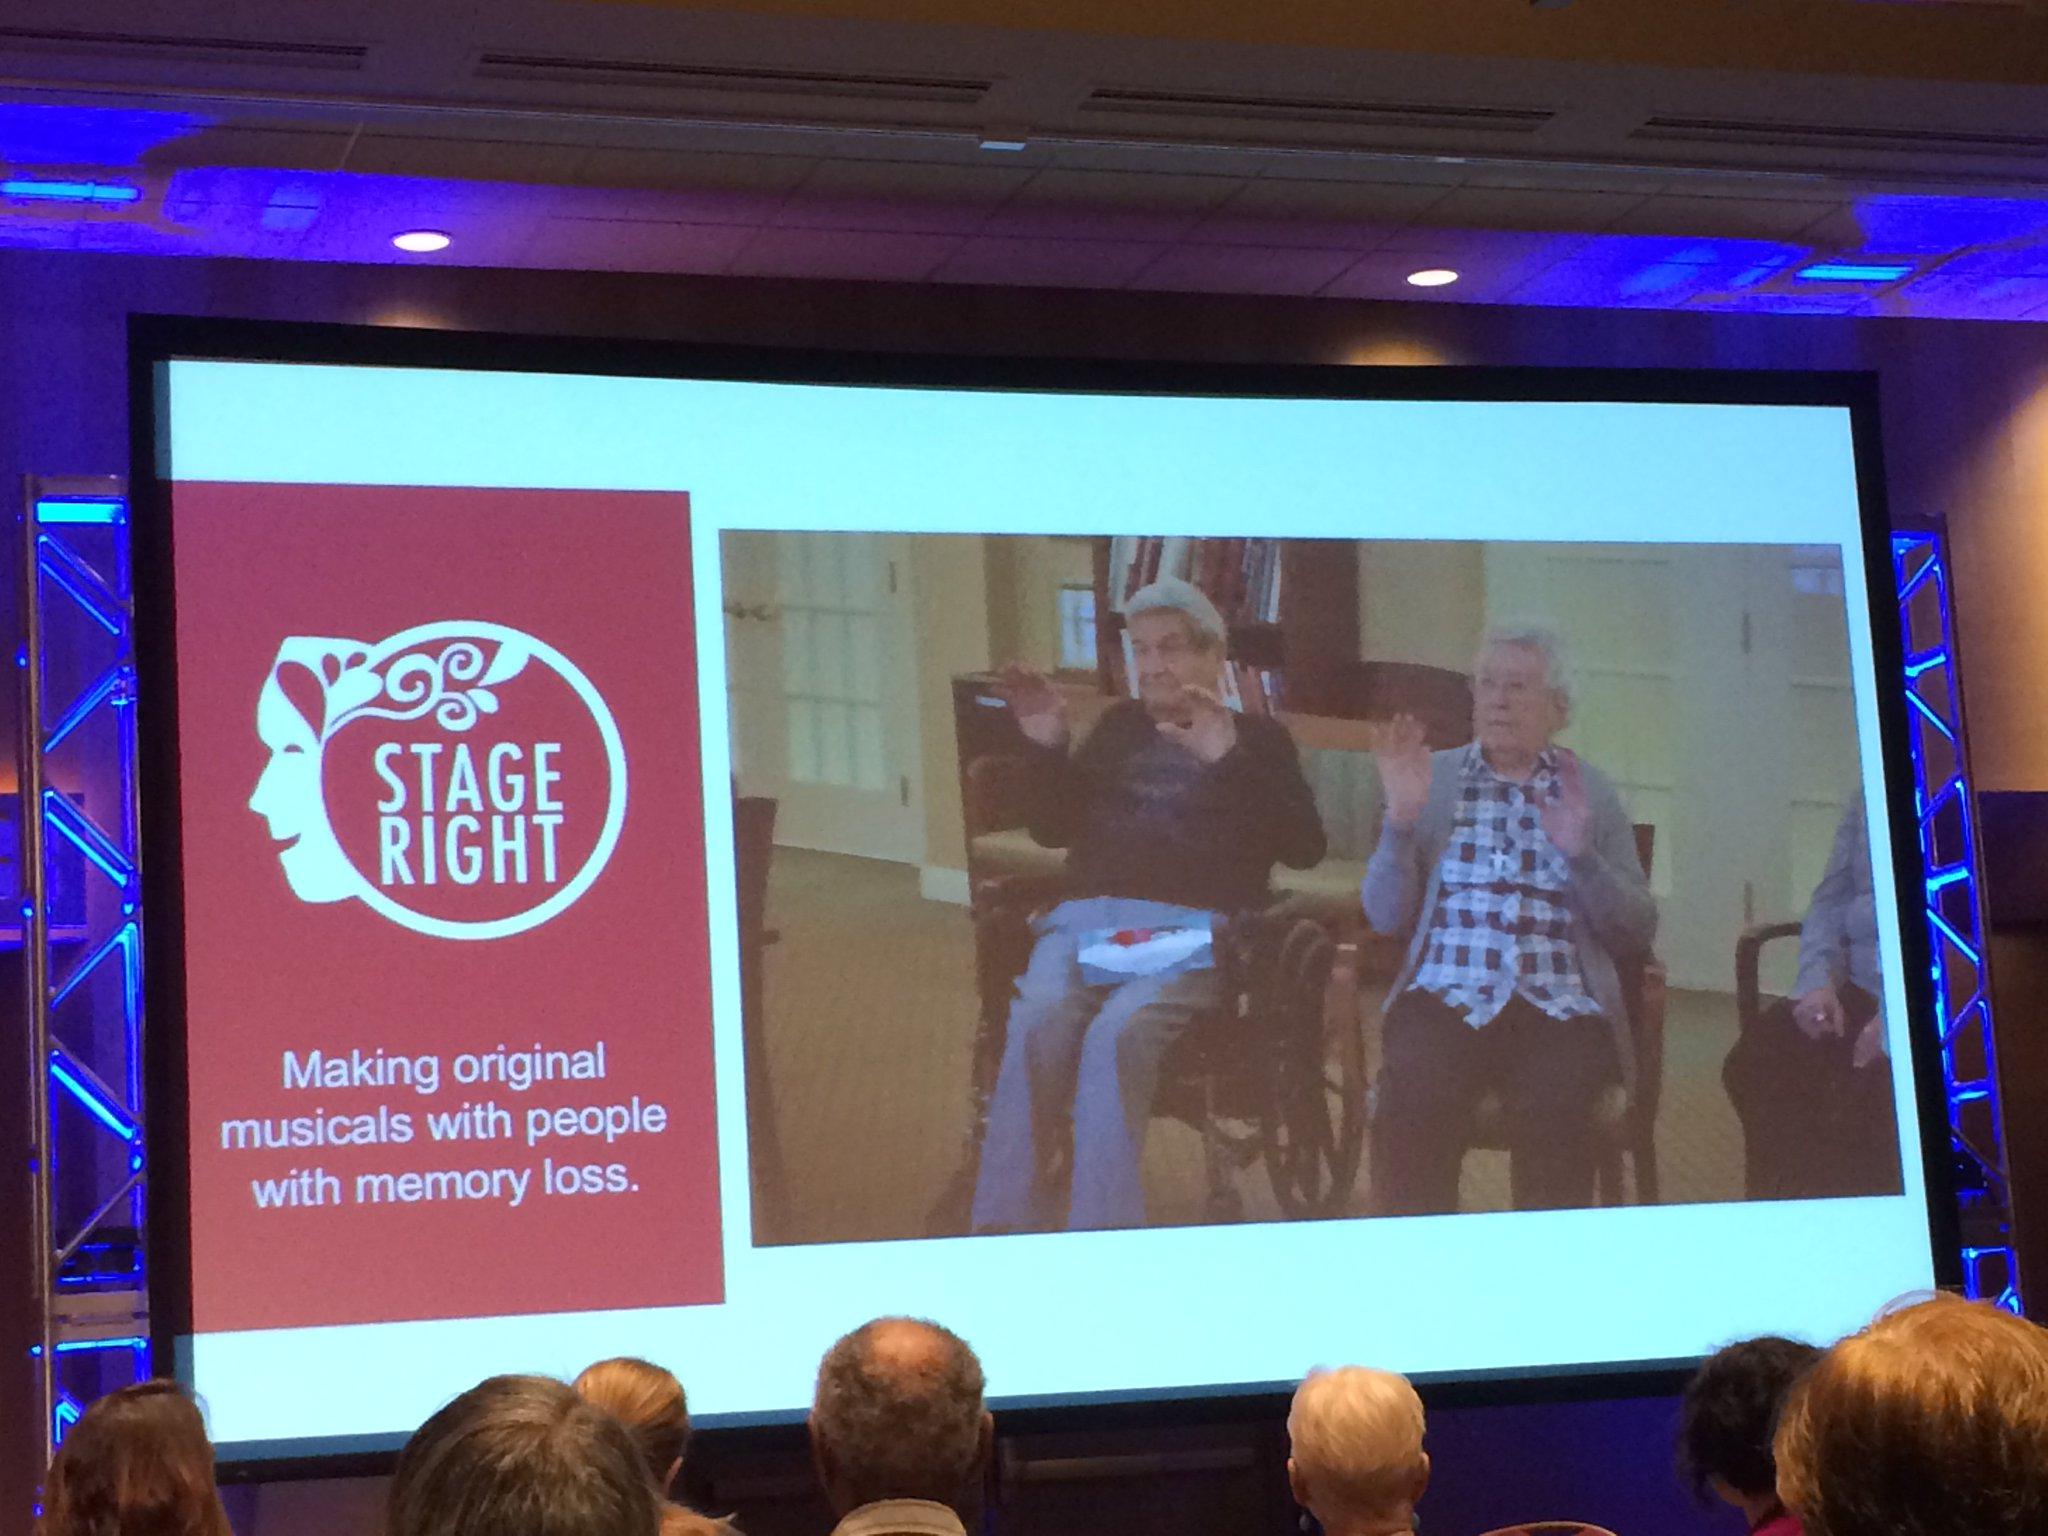 So  inspirational! We loved hearing about Stage Right and how they help people with memory loss create musicals! #GensUnited17 #ageamped https://t.co/XRVYfG2It1